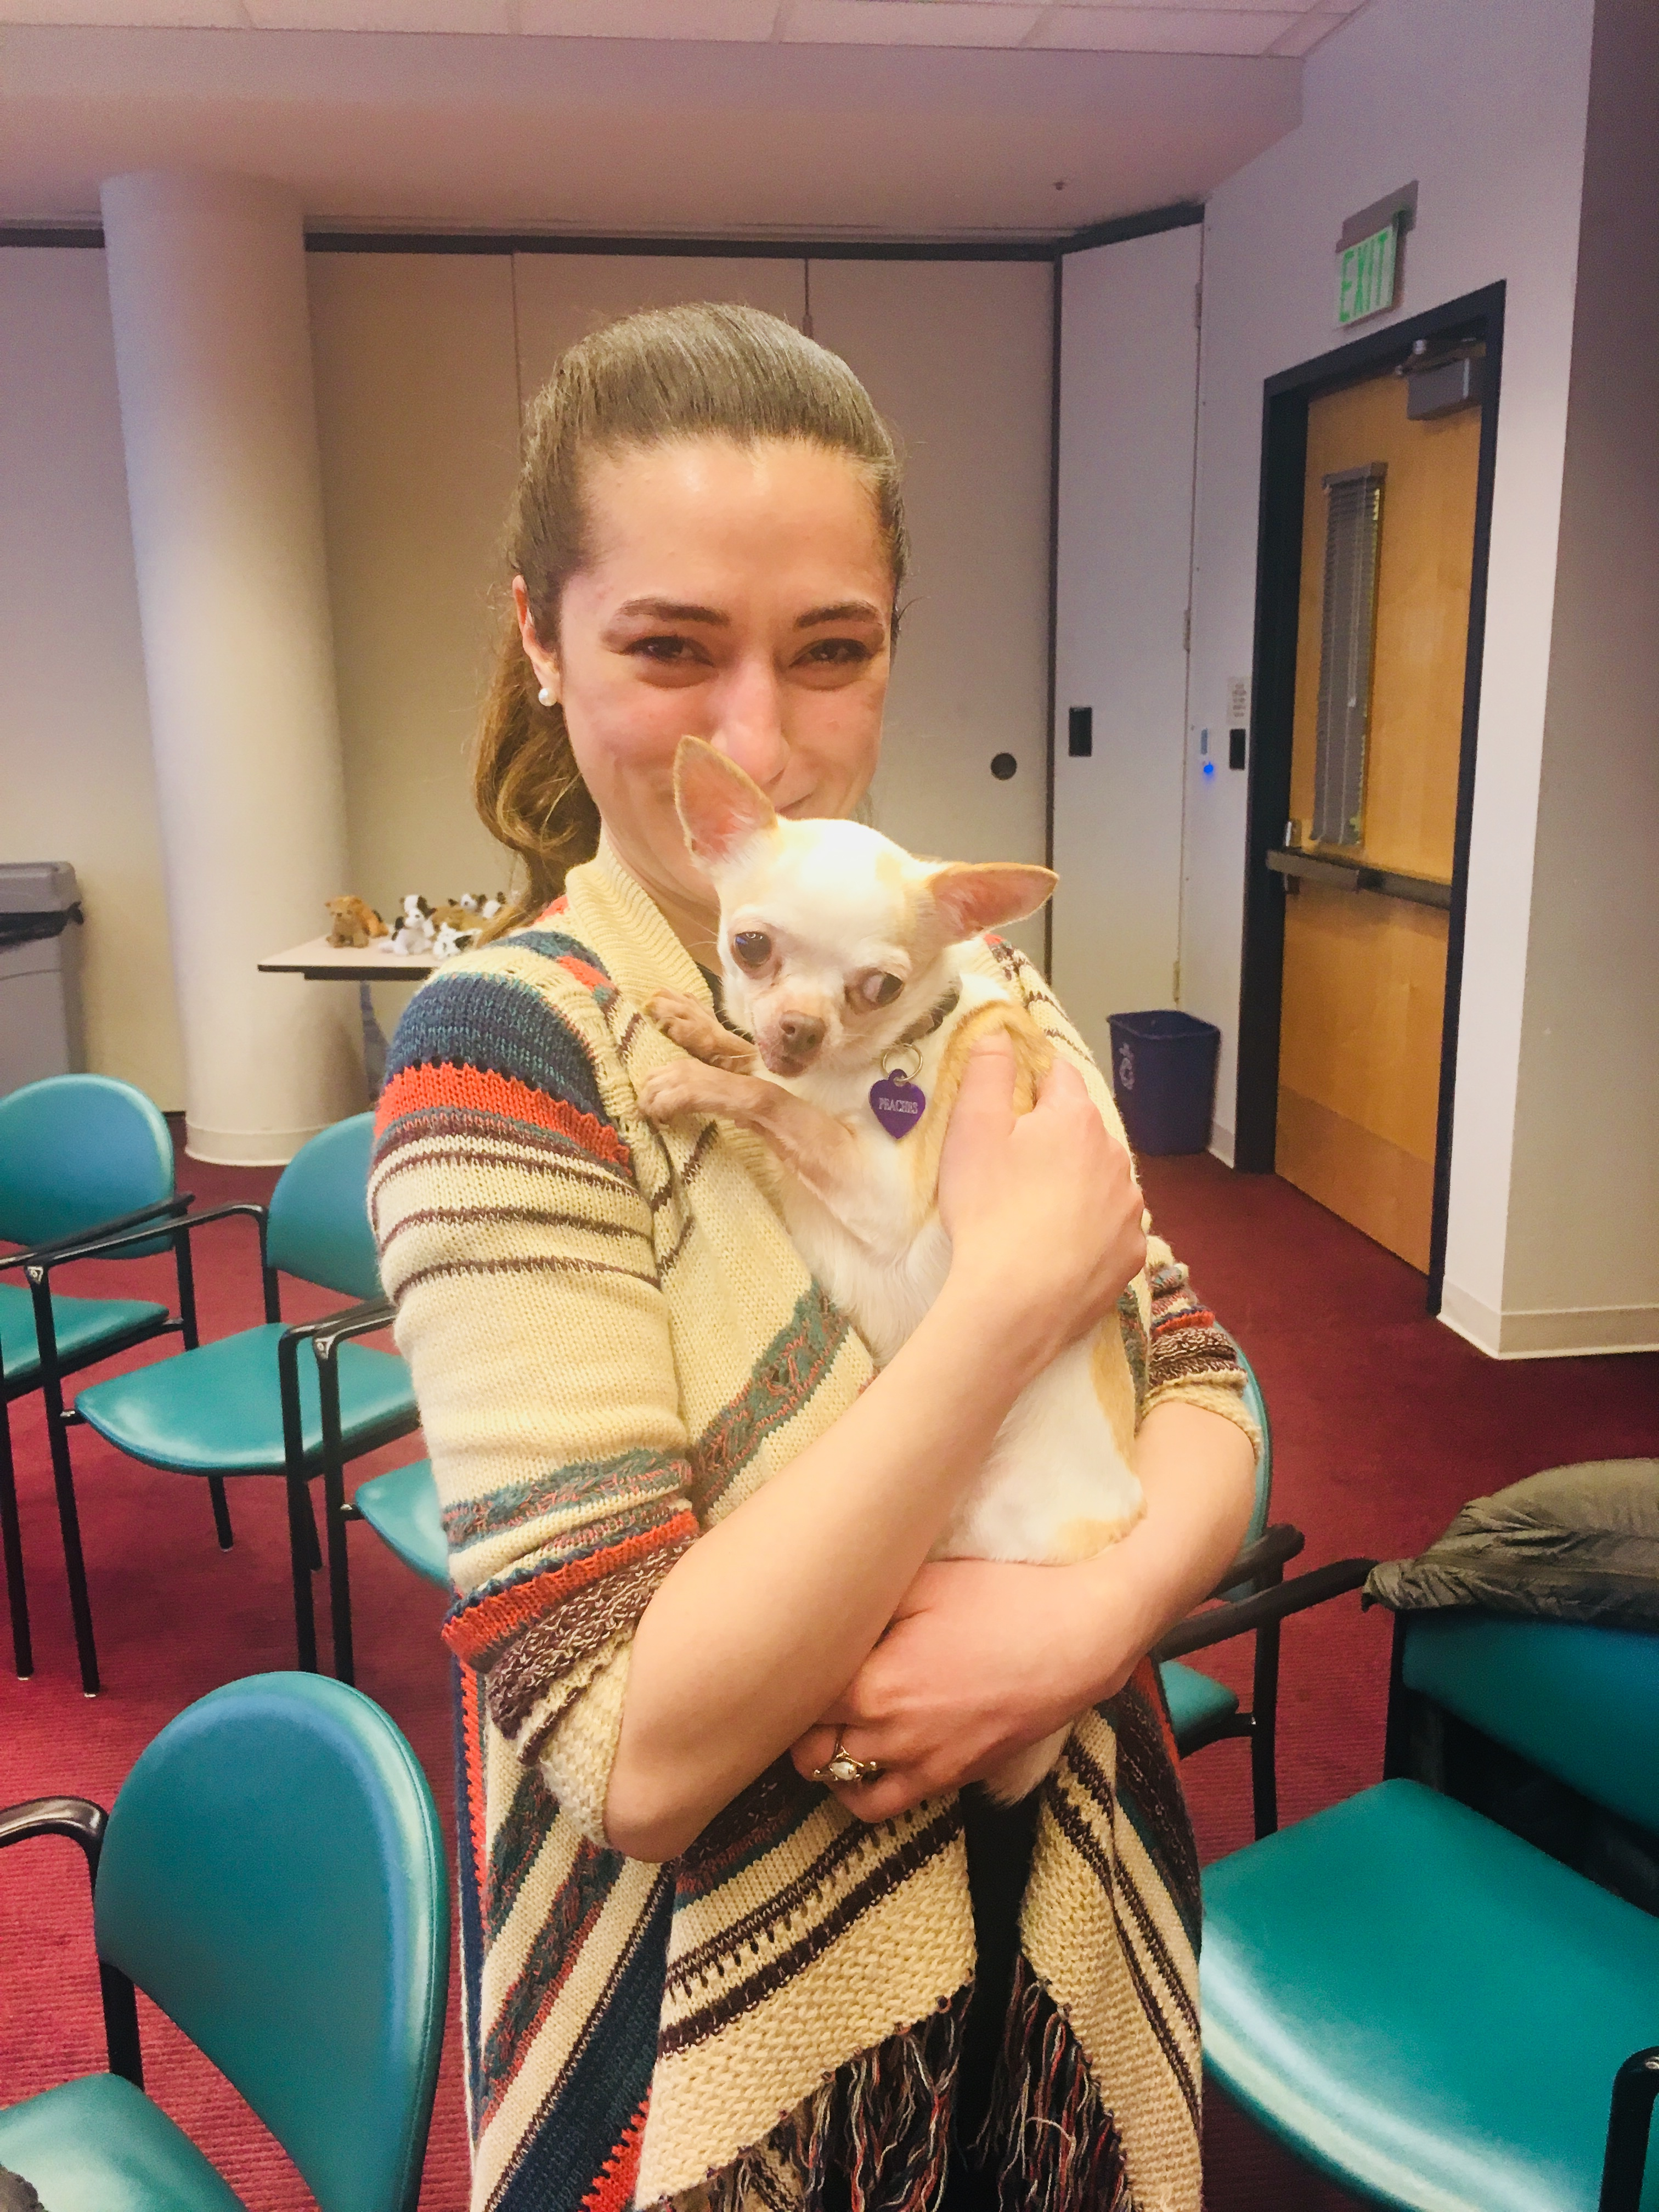 WTBBL Assistant Manager Alycia cuddles a rescue Chihuahua at the Special Pet Meet & Greet Event on May 5, 2018.